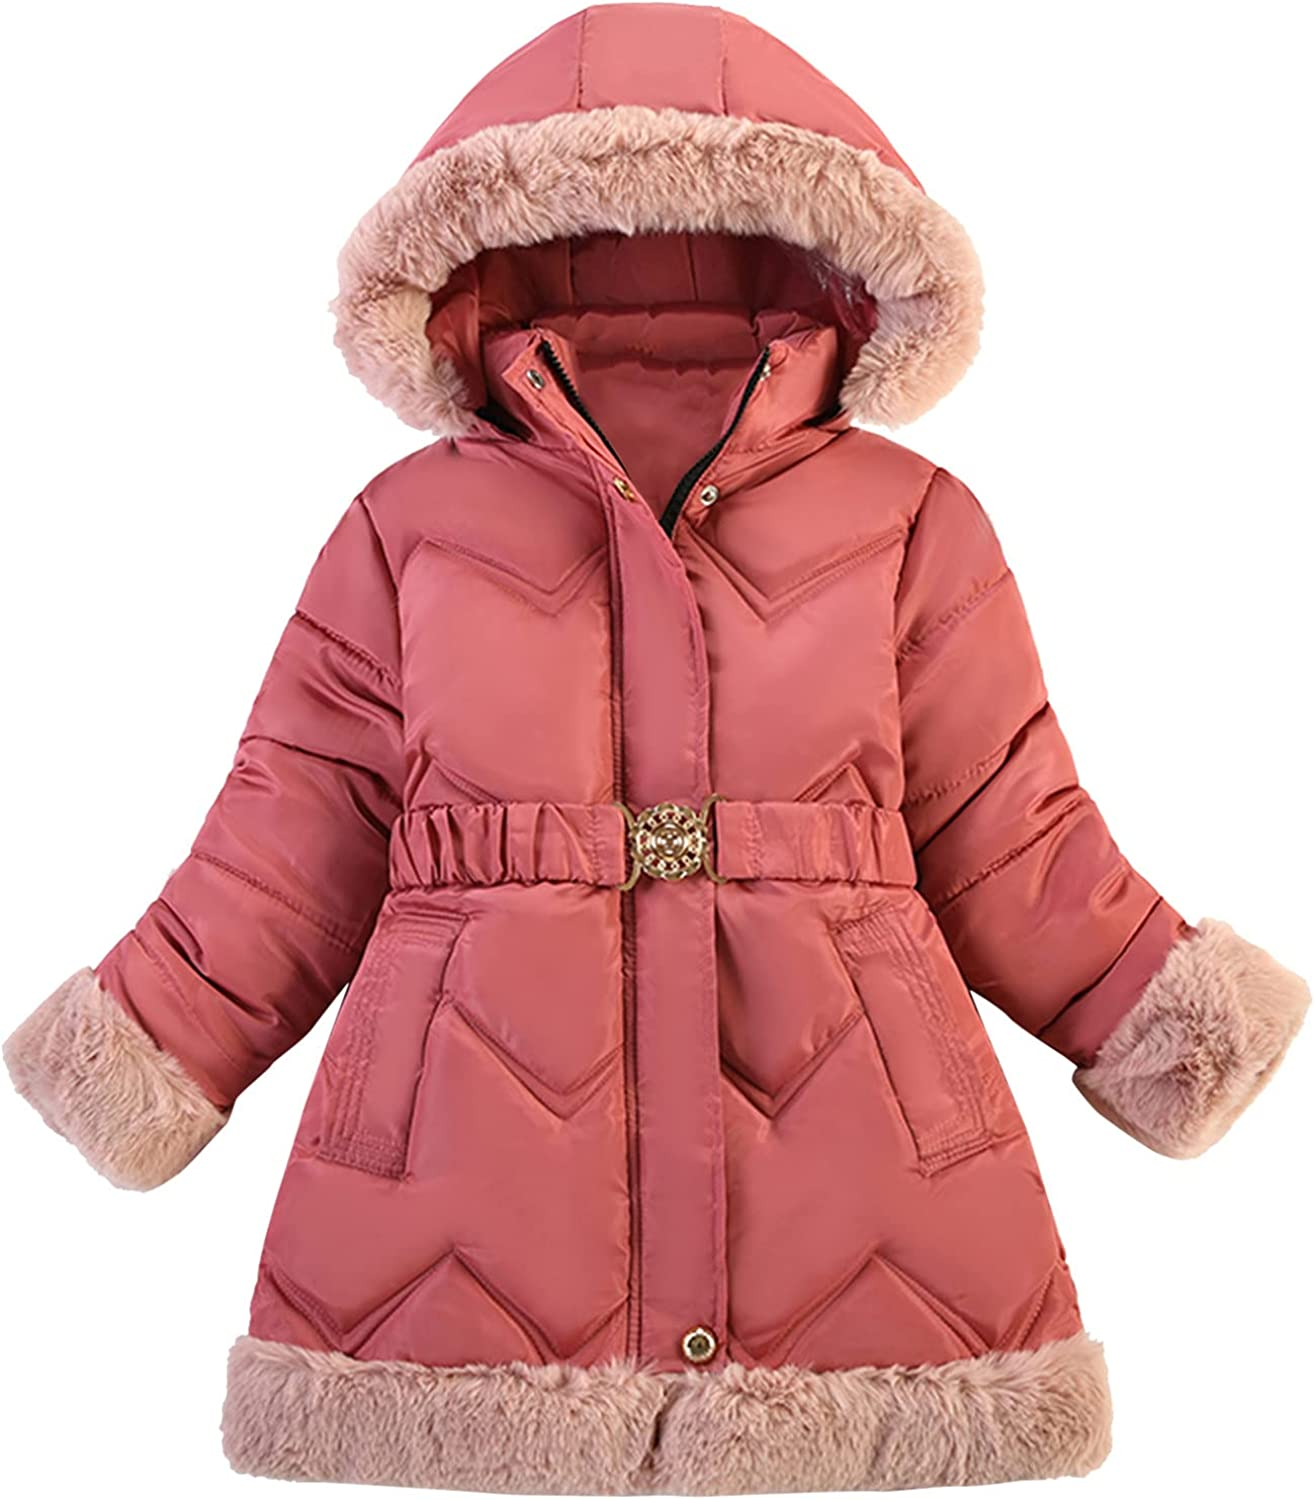 Forver Toddler Kids Puffer Down Padded Coat Winter Jacket Coat Boy Jacket Warm Hooded Clothes Casual Puffer Overcoat Clothes